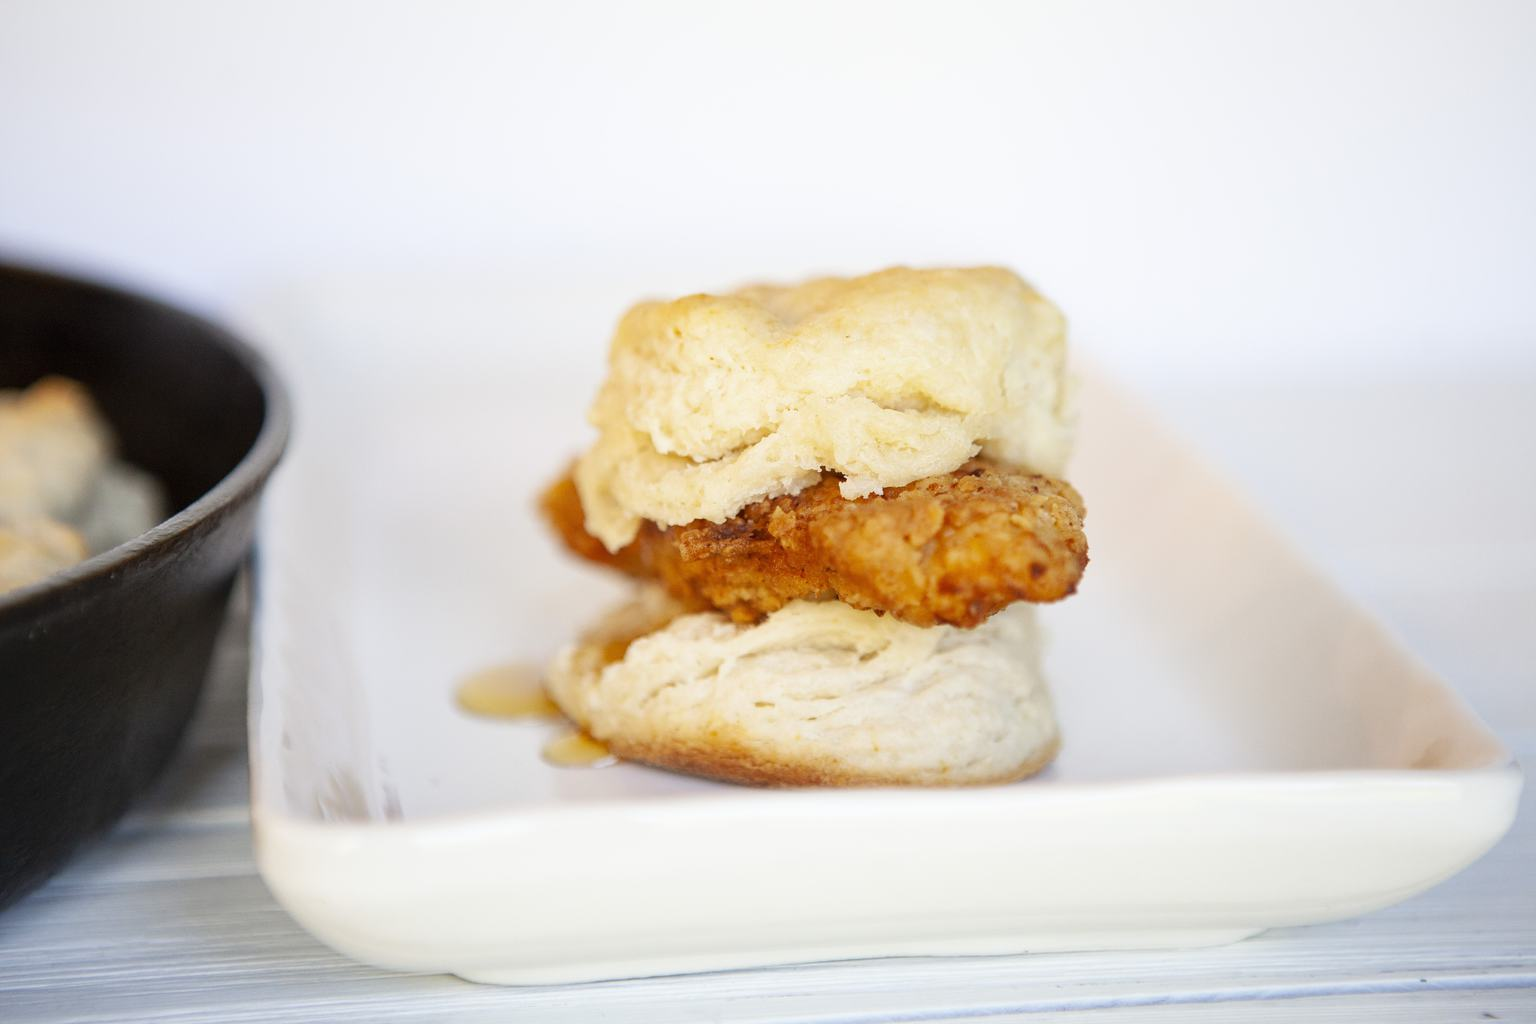 Spicy Chicken Biscuits – Made With Real Homemade Buttermilk Biscuits